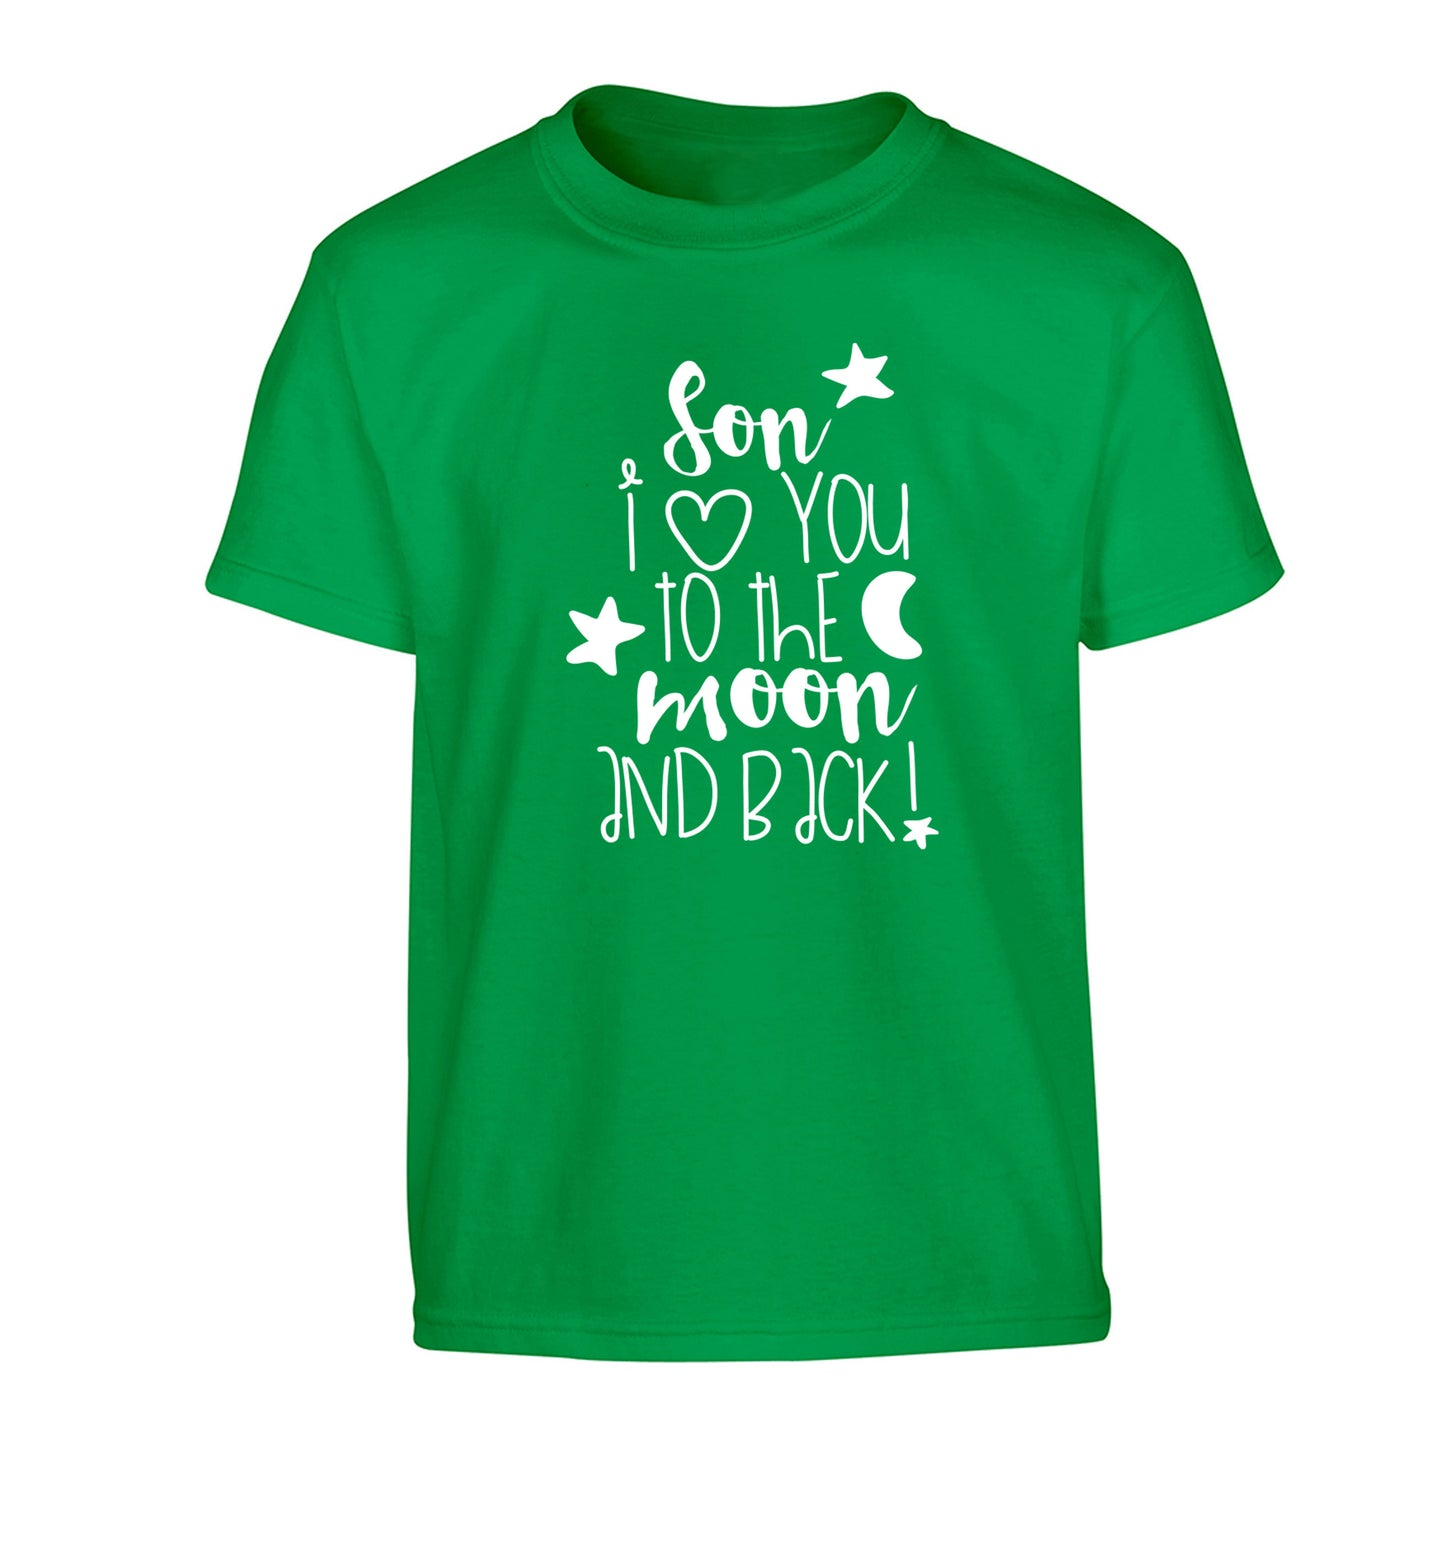 Son I love you to the moon and back Children's green Tshirt 12-14 Years